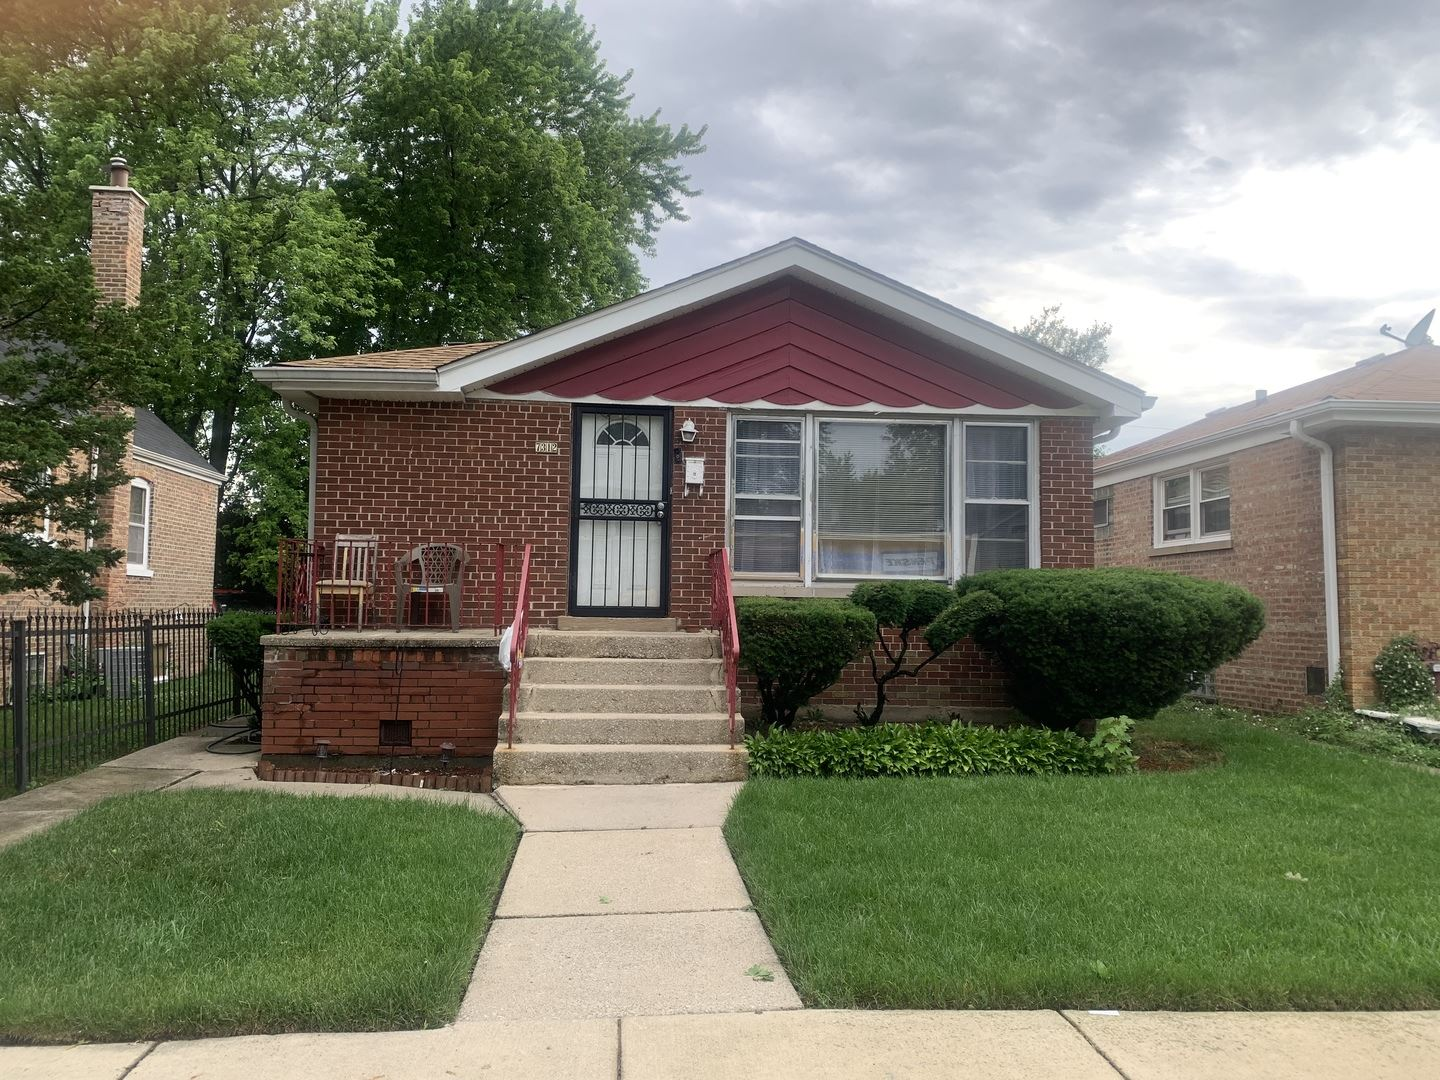 7312 S Honore Street, Chicago, IL 60636 - #: 11140117